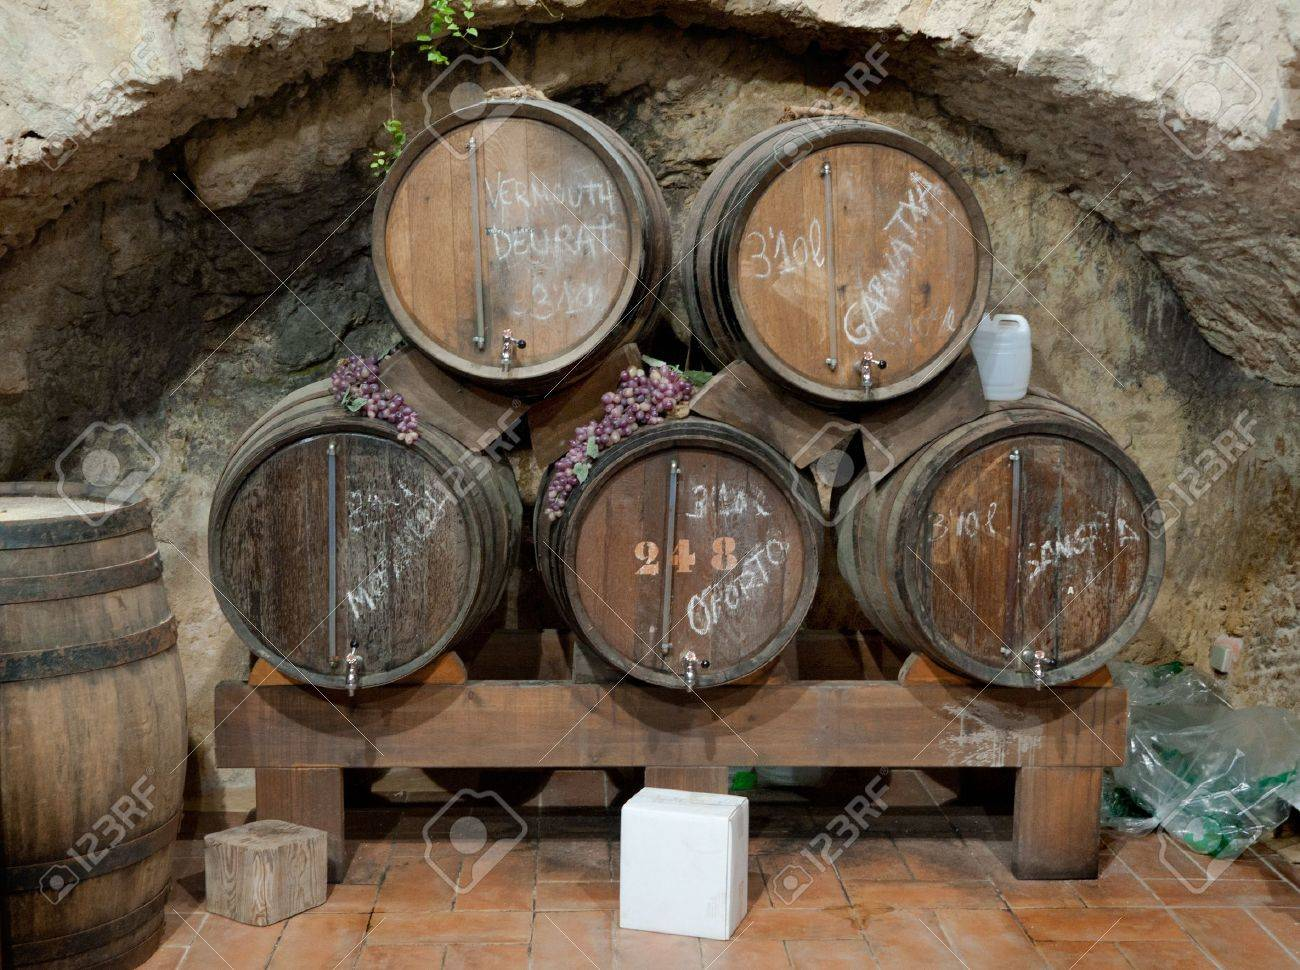 Wine barrels stacked in an old cellar, Canary island, Spain. Stock Photo - 11710335